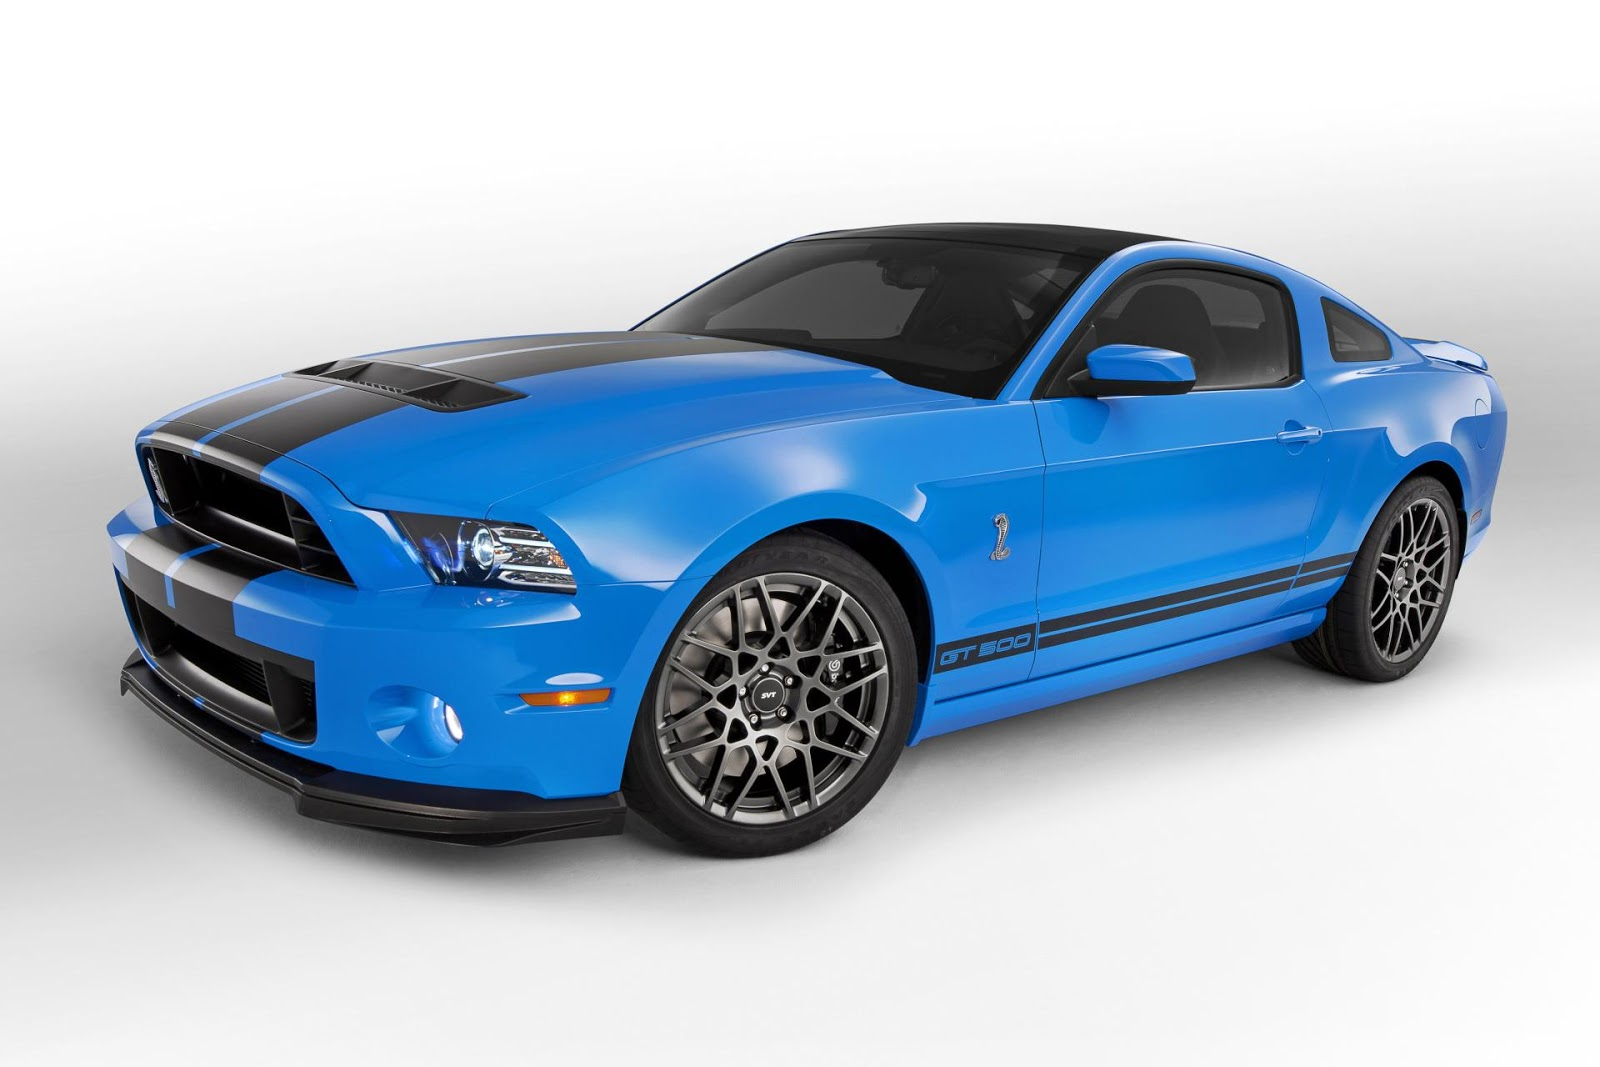 ford shelby mustang gt500 2013 hottest car wallpapers. Black Bedroom Furniture Sets. Home Design Ideas